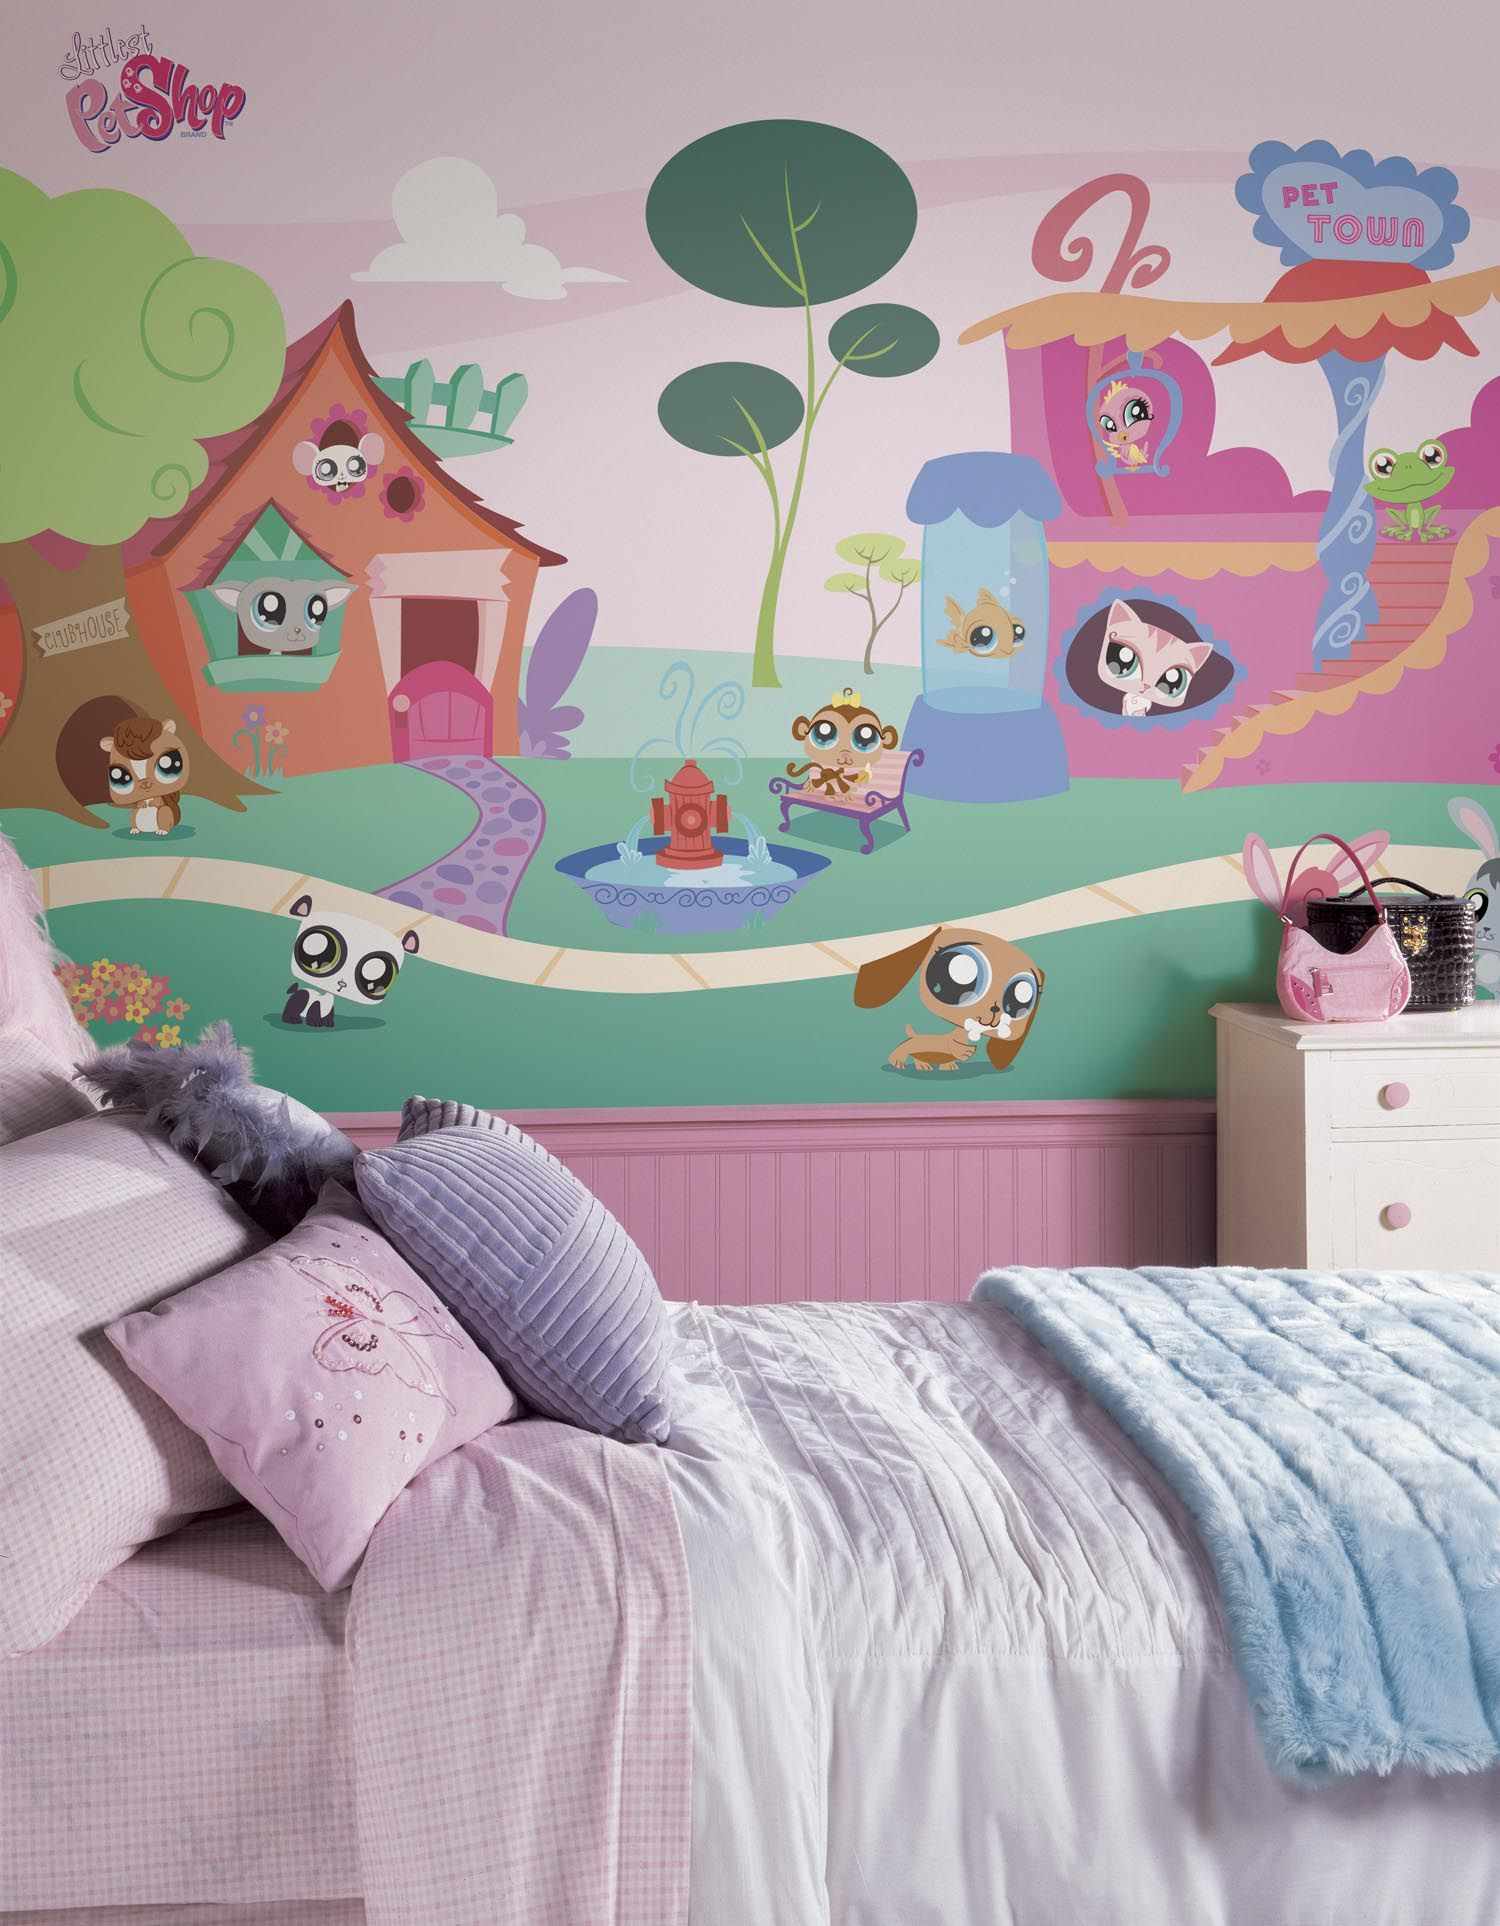 Best Littlest Pet Shop Wallpaper Show Google Search 640 x 480